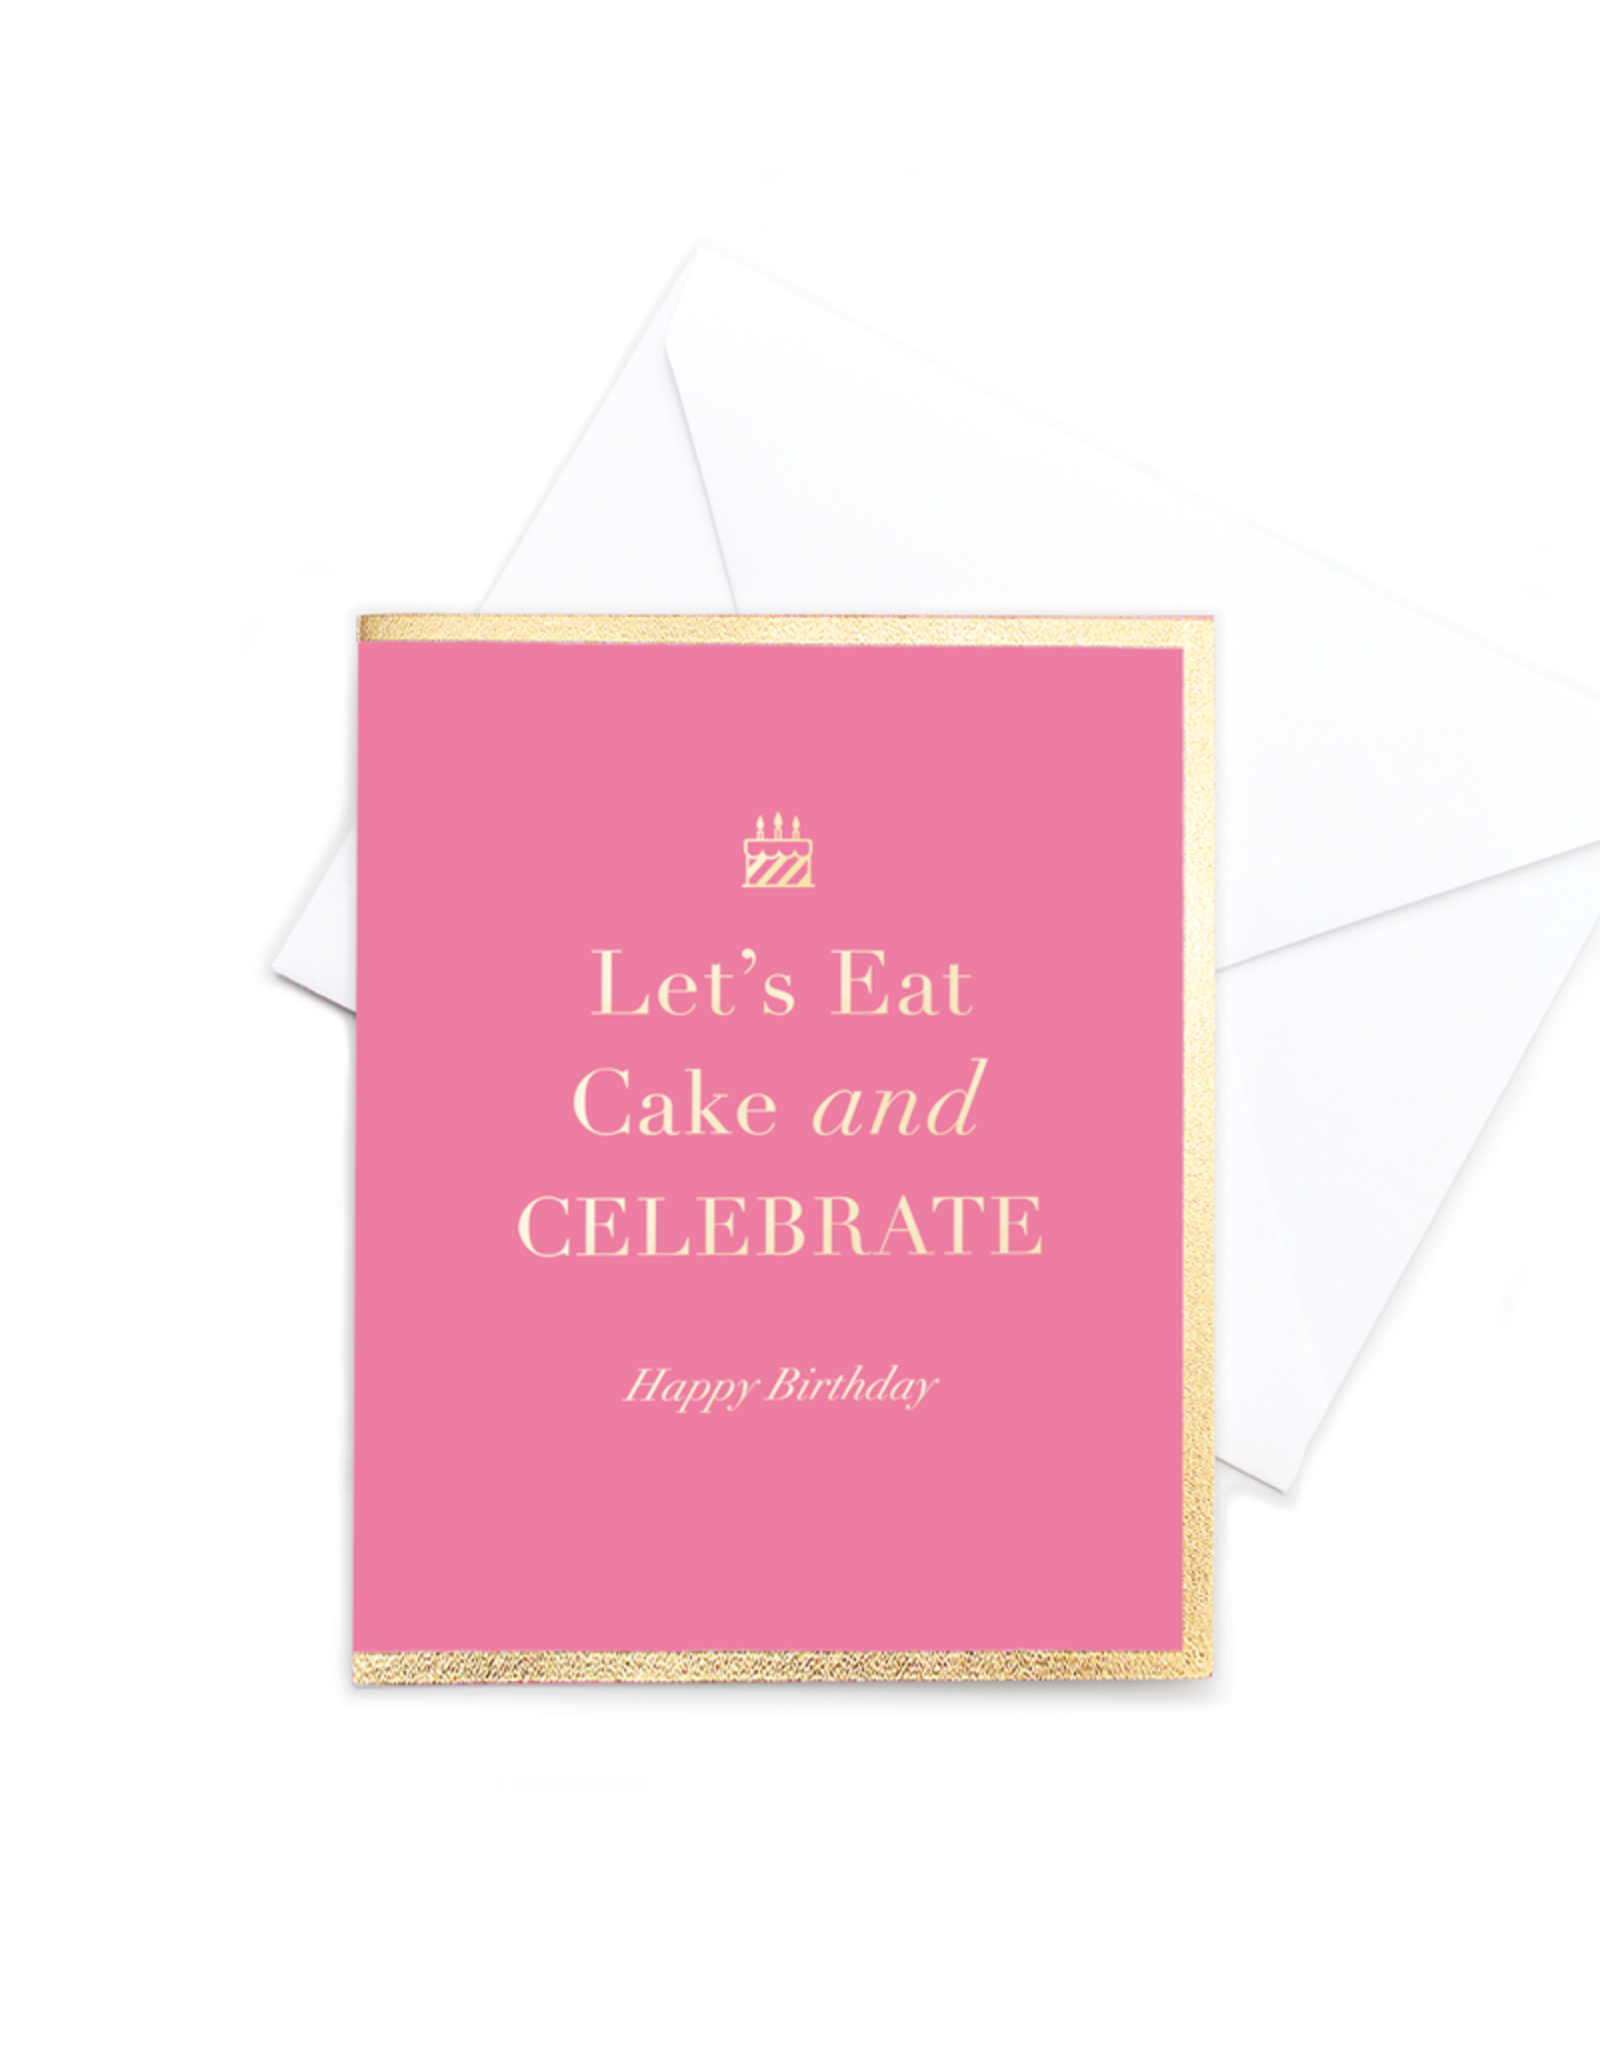 Hearts Design Pop - Eat Cake and Celebrate!